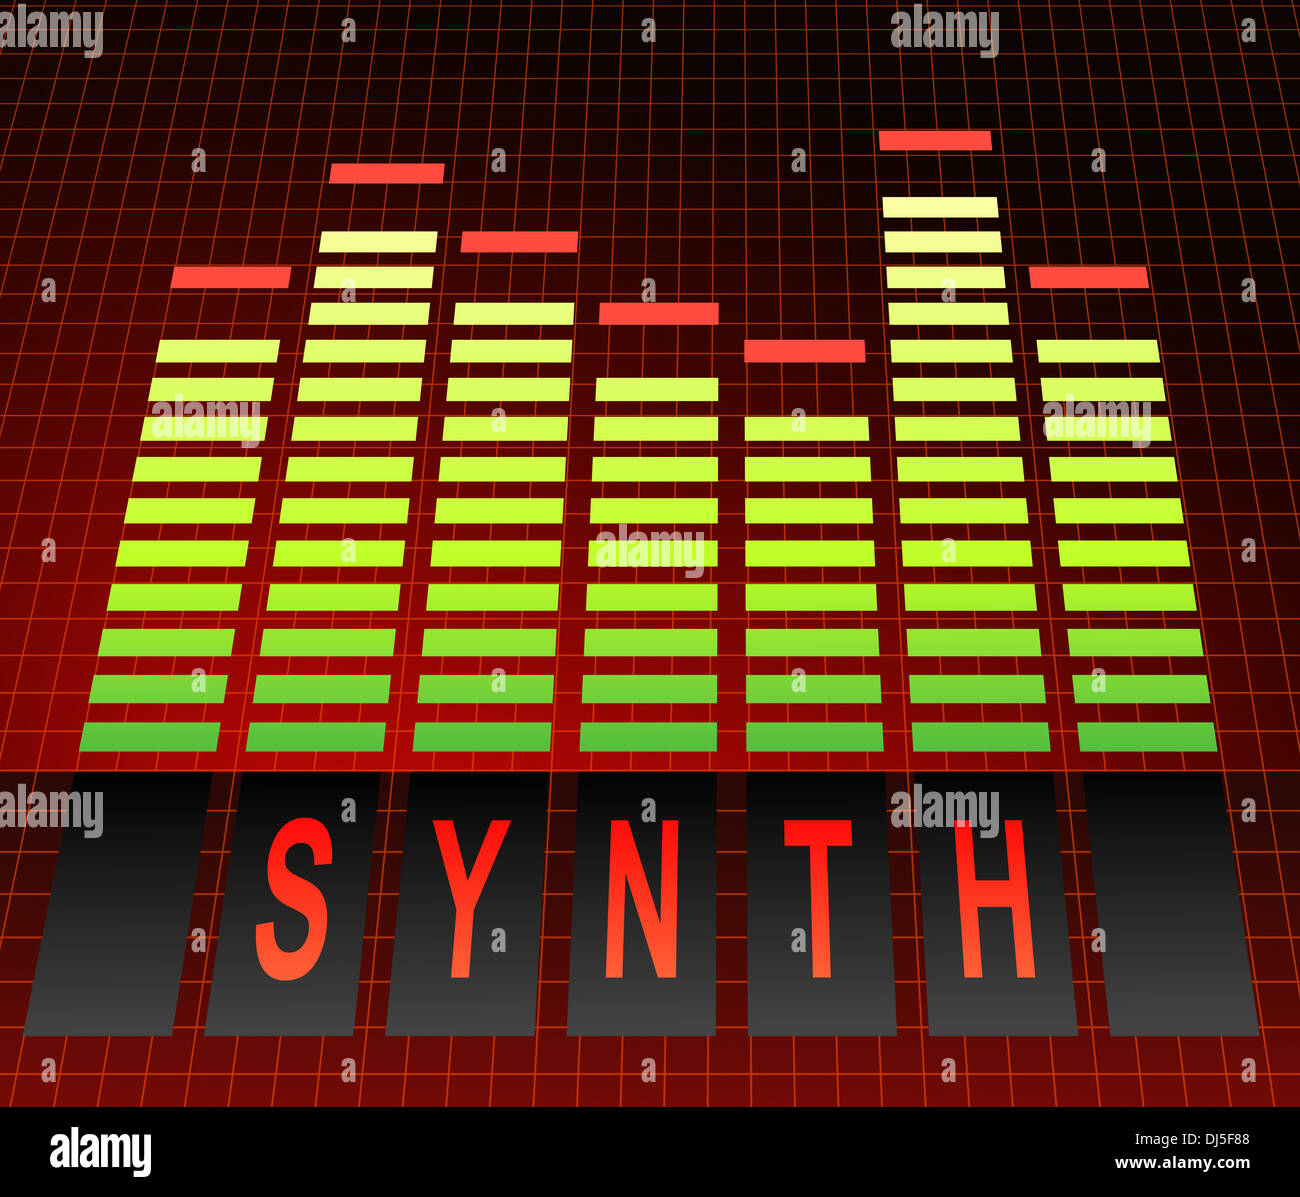 Synth concept. - Stock Image